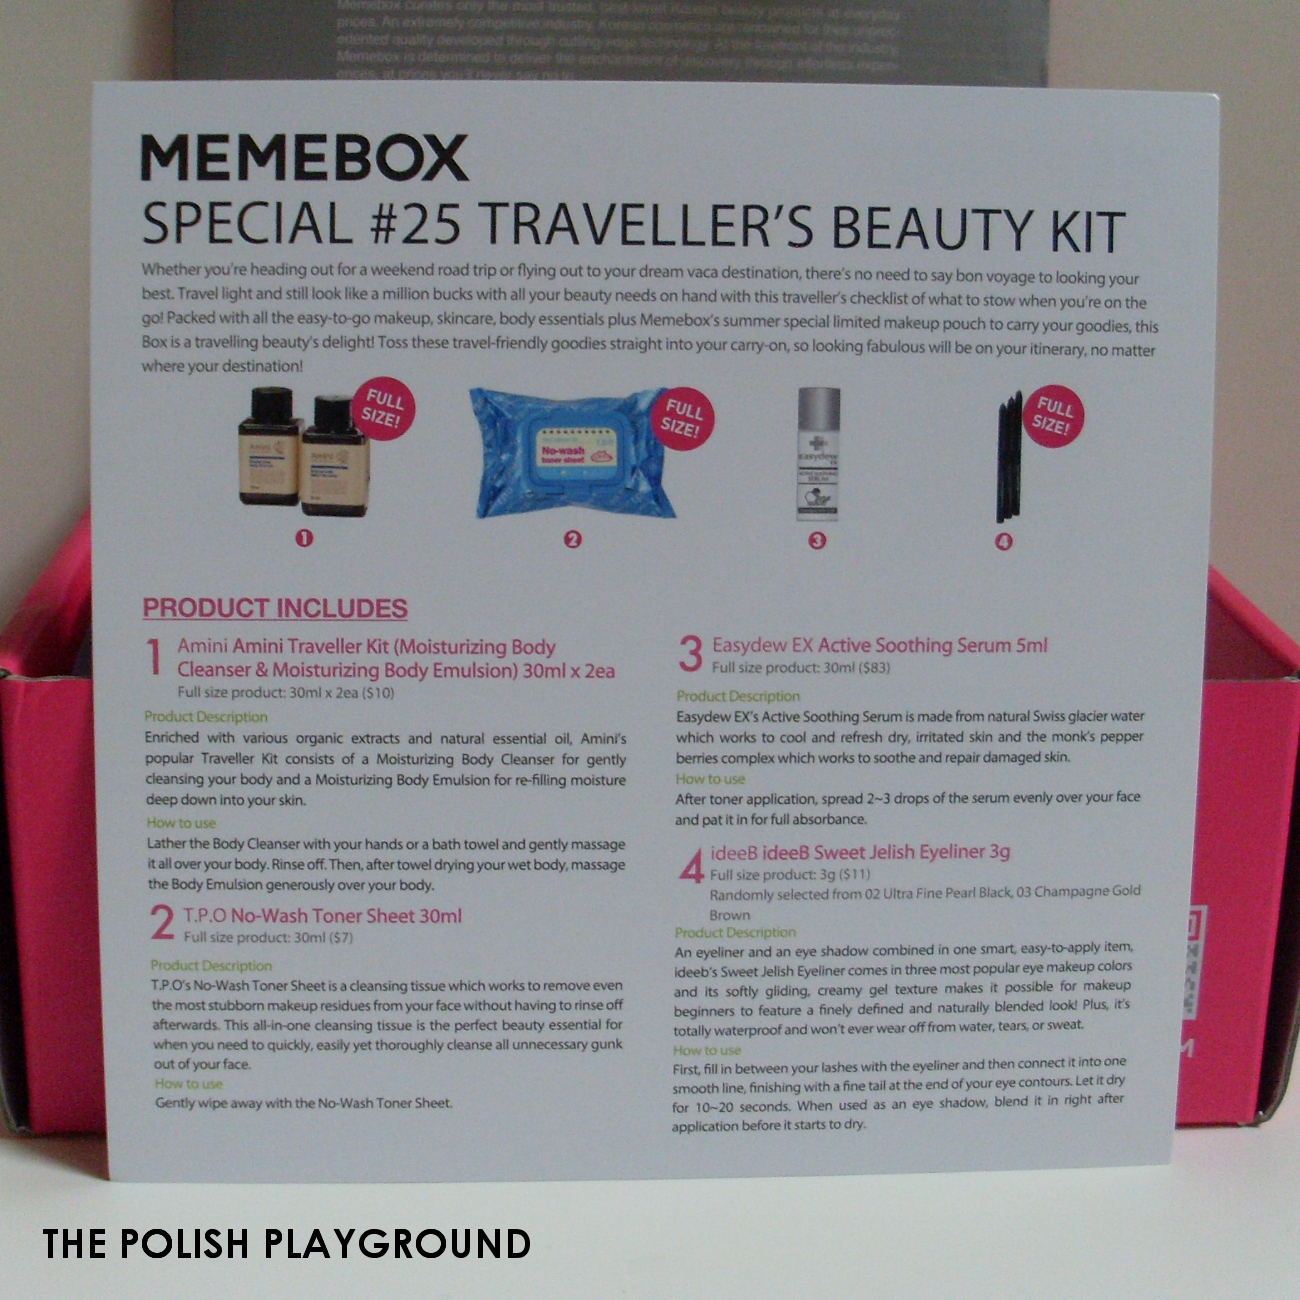 Memebox Special #25 Traveler's Beauty Kit Unboxing